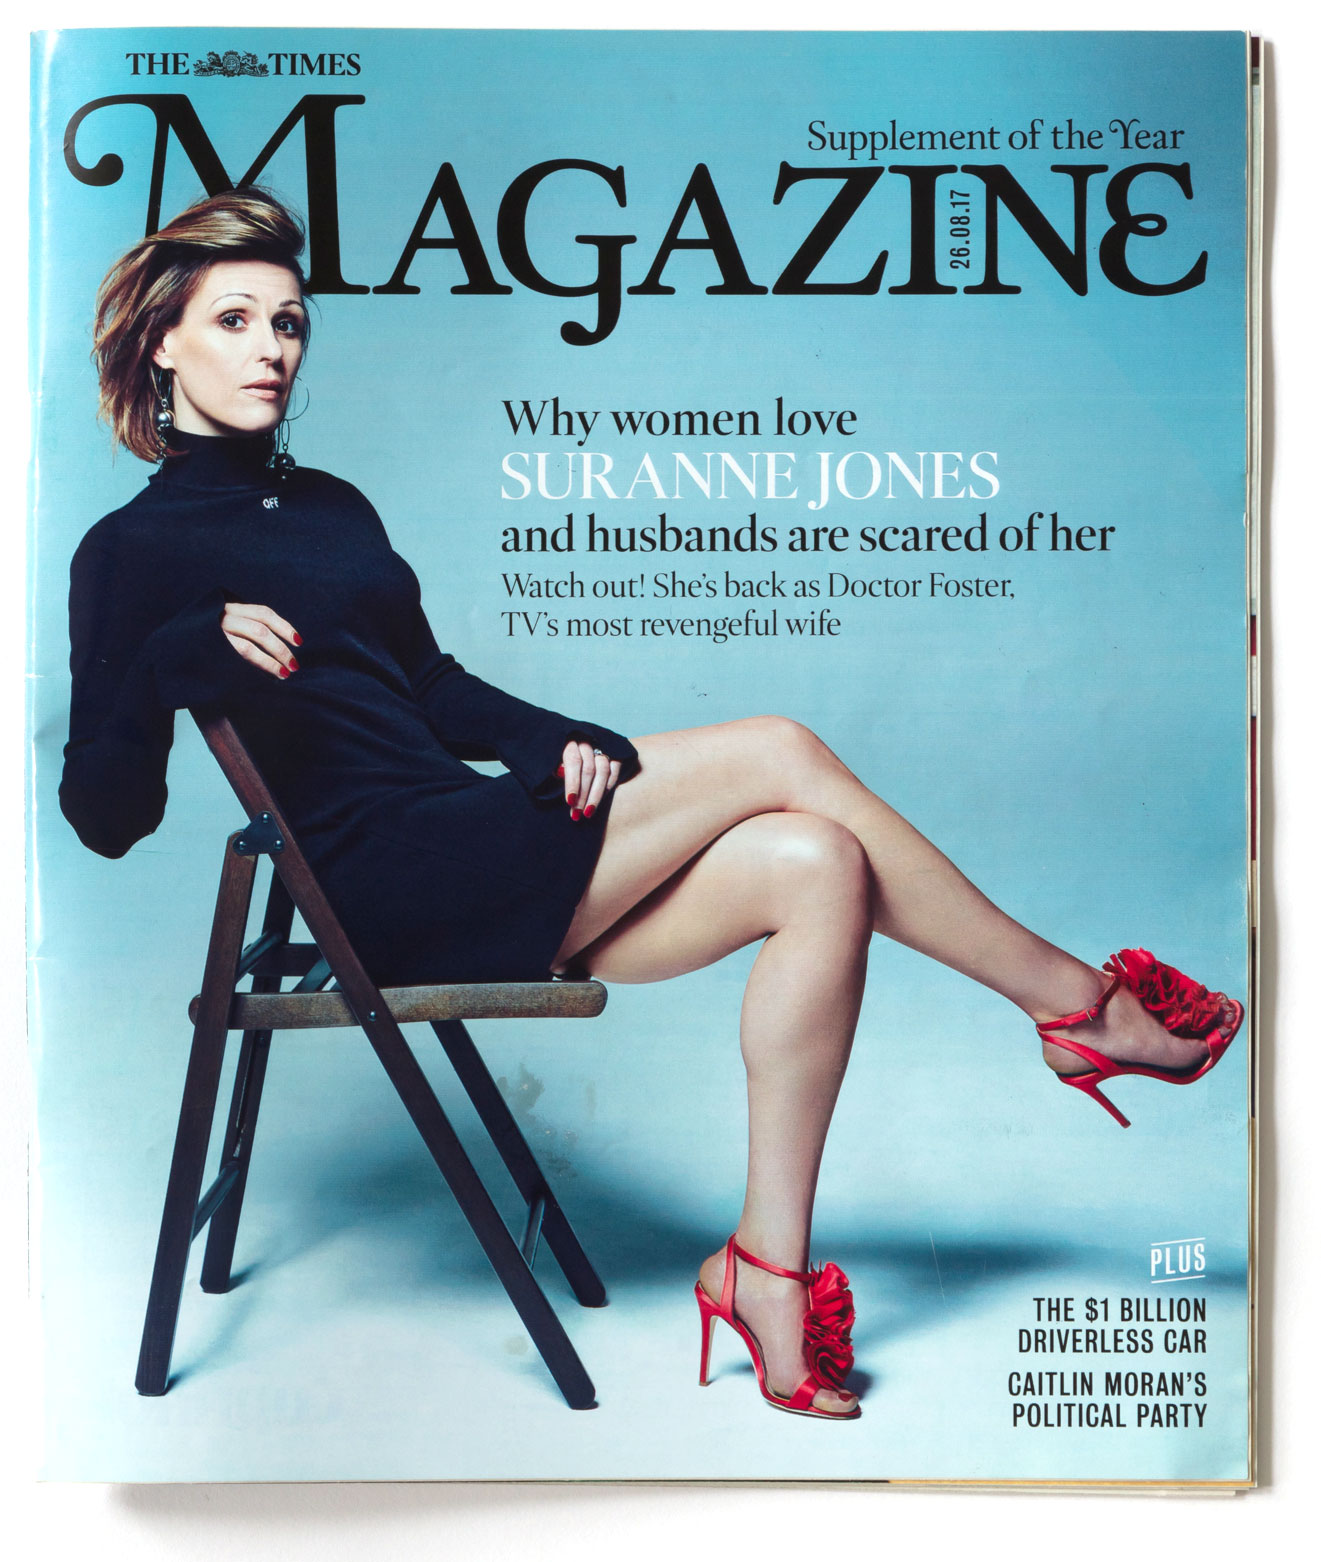 THE TIMES MAGAZINE – AUGUST 2017